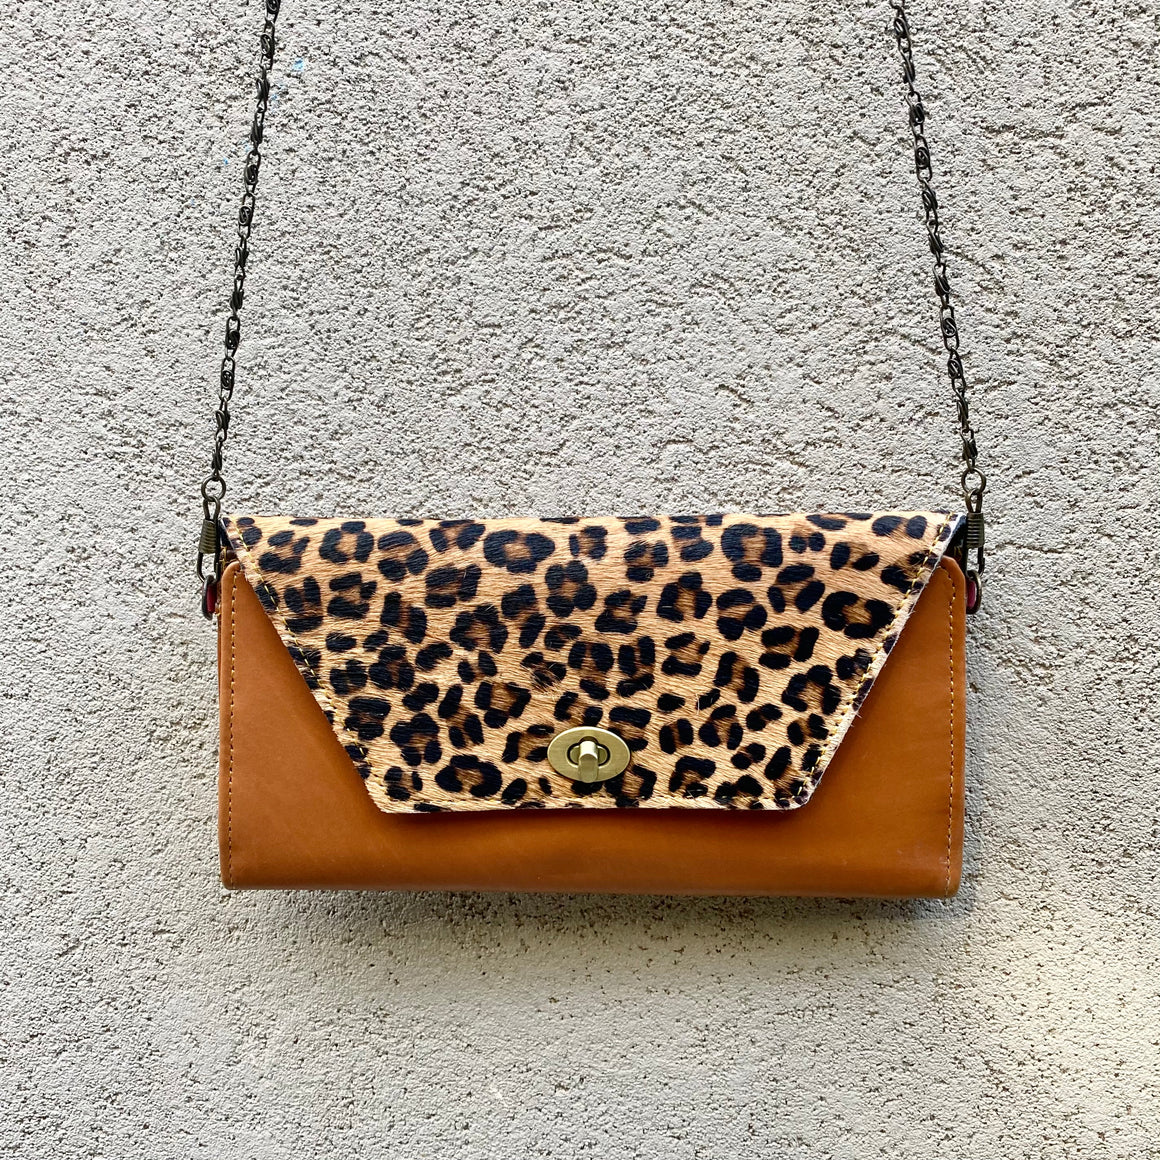 Harley Cowhide and Leather Crossbody Wallet Clutch - Leopard, Apricot Tan, wallets - KITTY KAT,